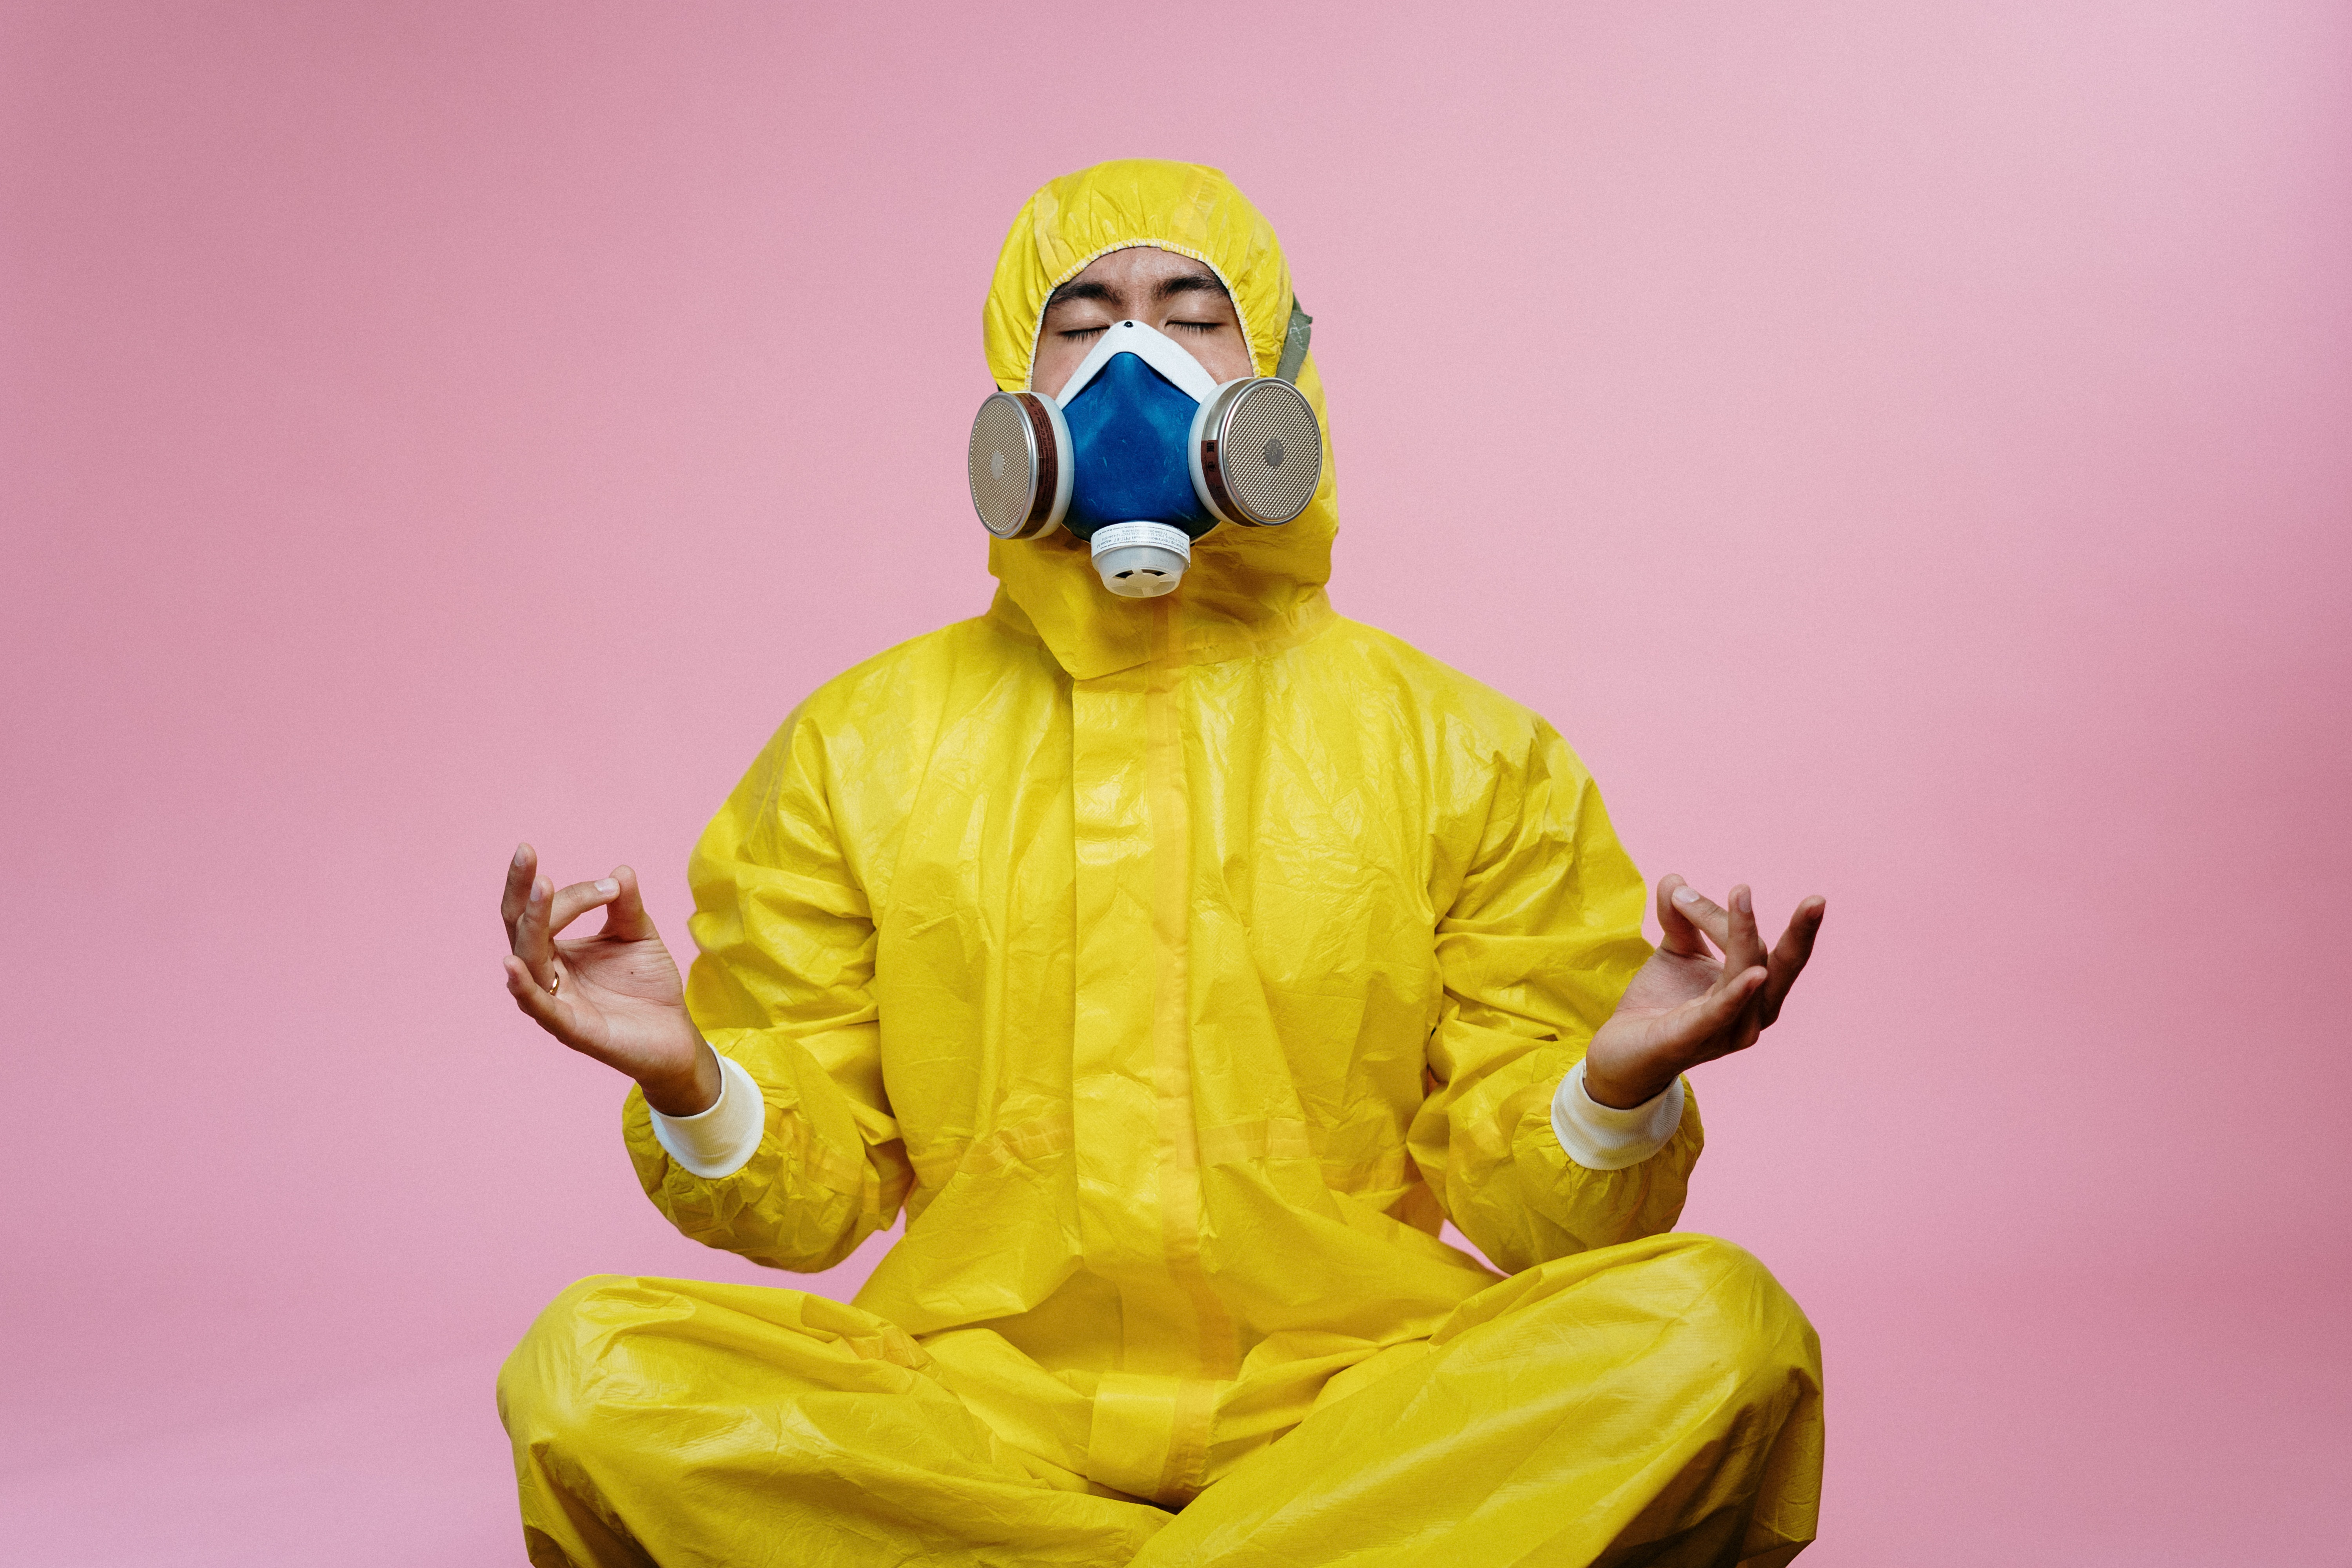 A person dressed in a bright yellow hazmat suit and respirator